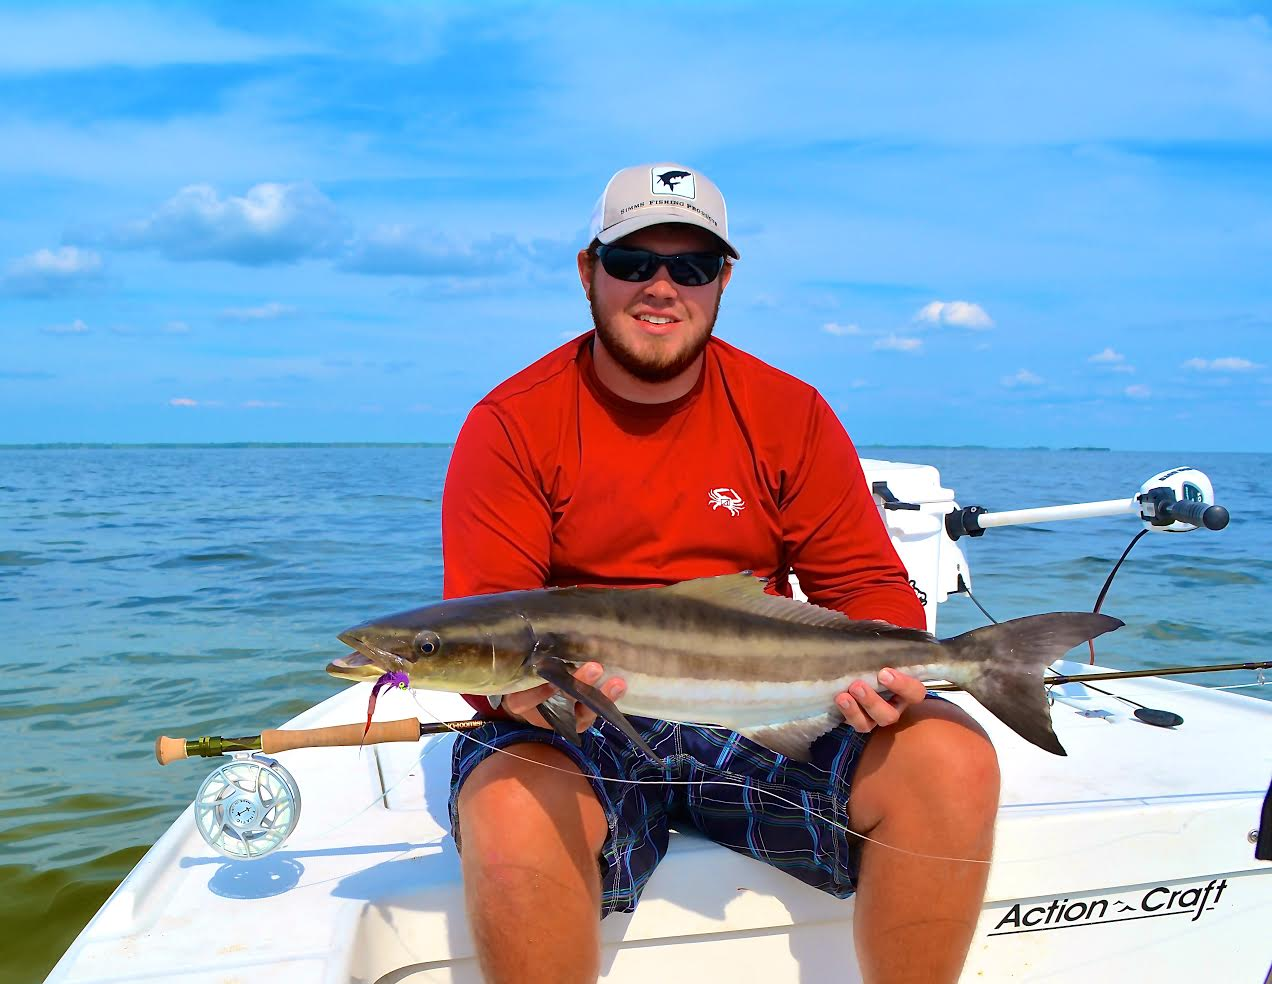 Salty action charters fishing fly fishing captain for Steinhatchee fl fishing